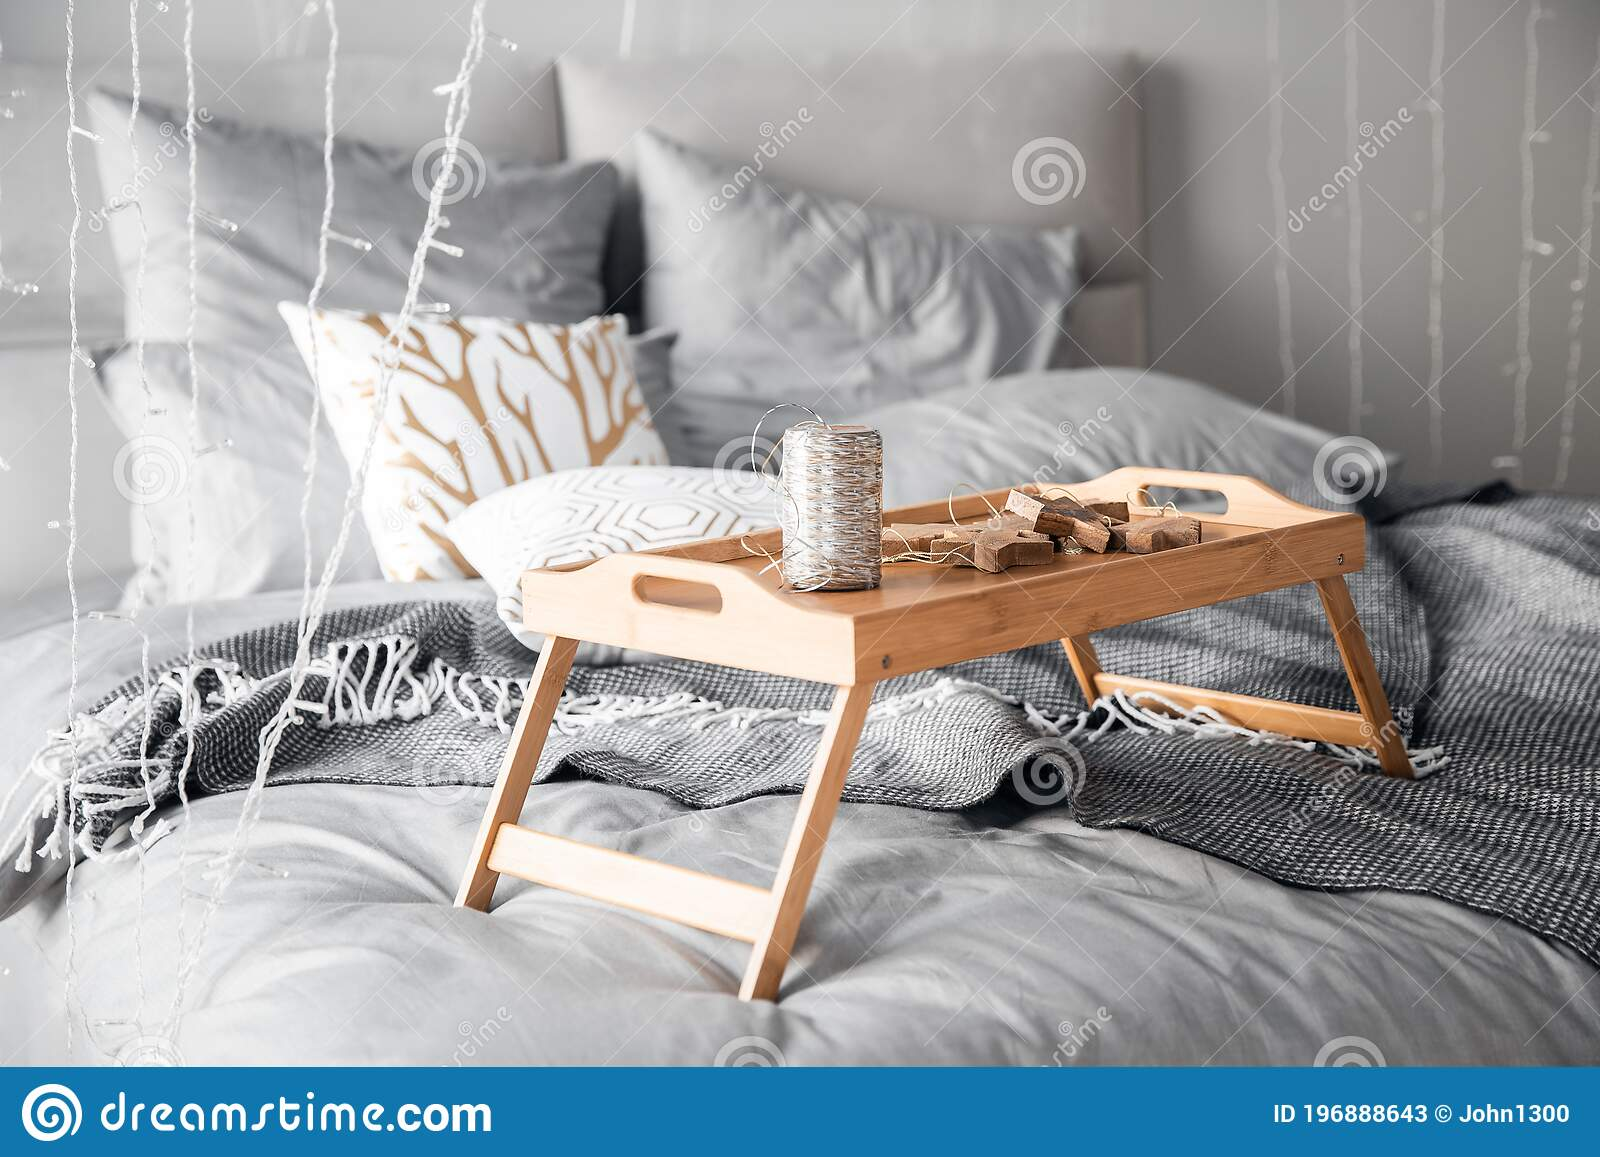 Wooden Small Breakfast Table Stands On Bed In Bedroom Gray Sheets Sun Shines Through Window Sunrise Stock Image Image Of Eating Dawn 196888643